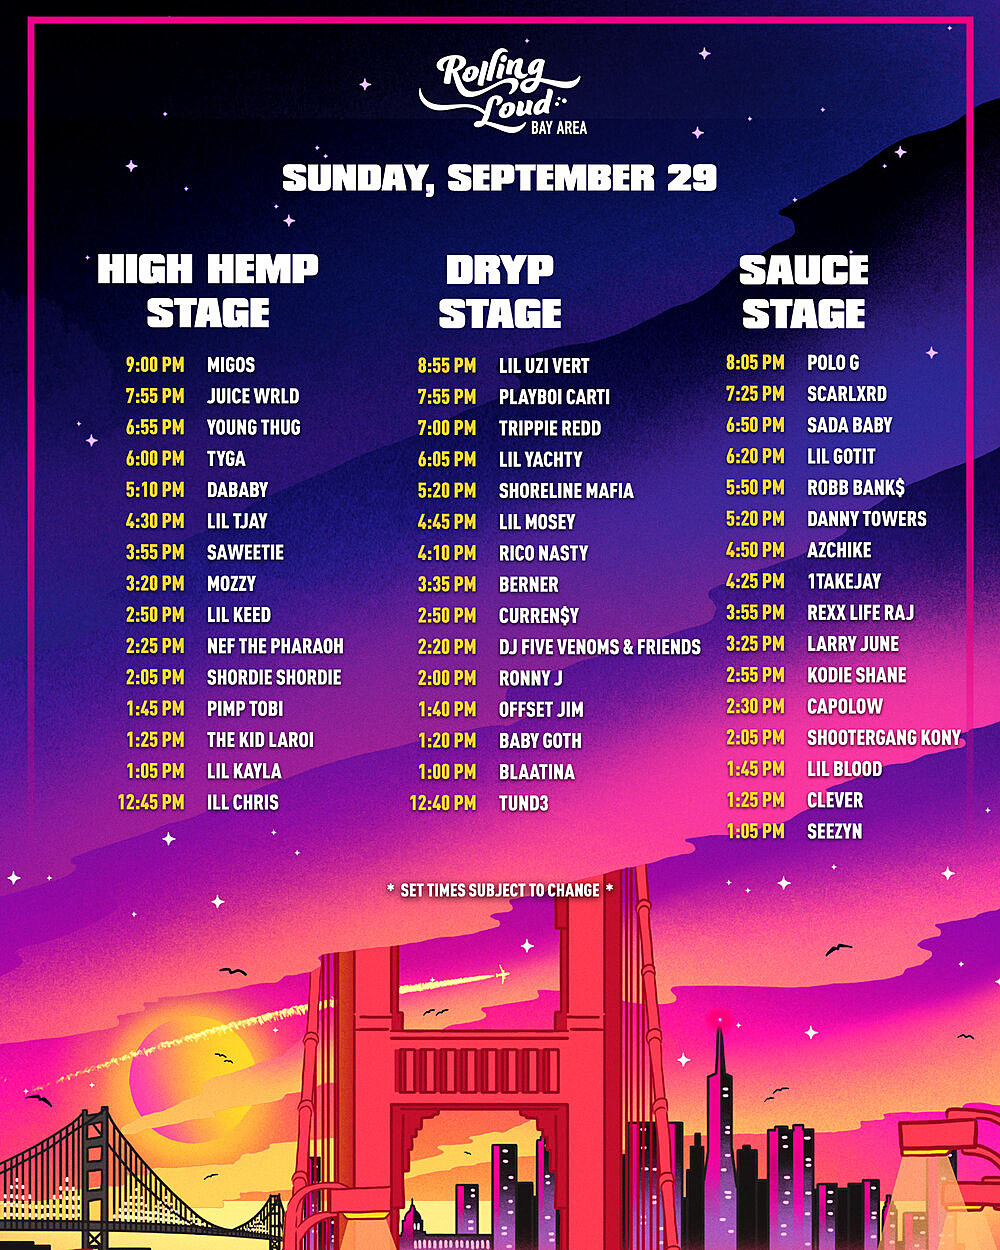 Rolling Loud Bay Area 2019 - Sunday set times